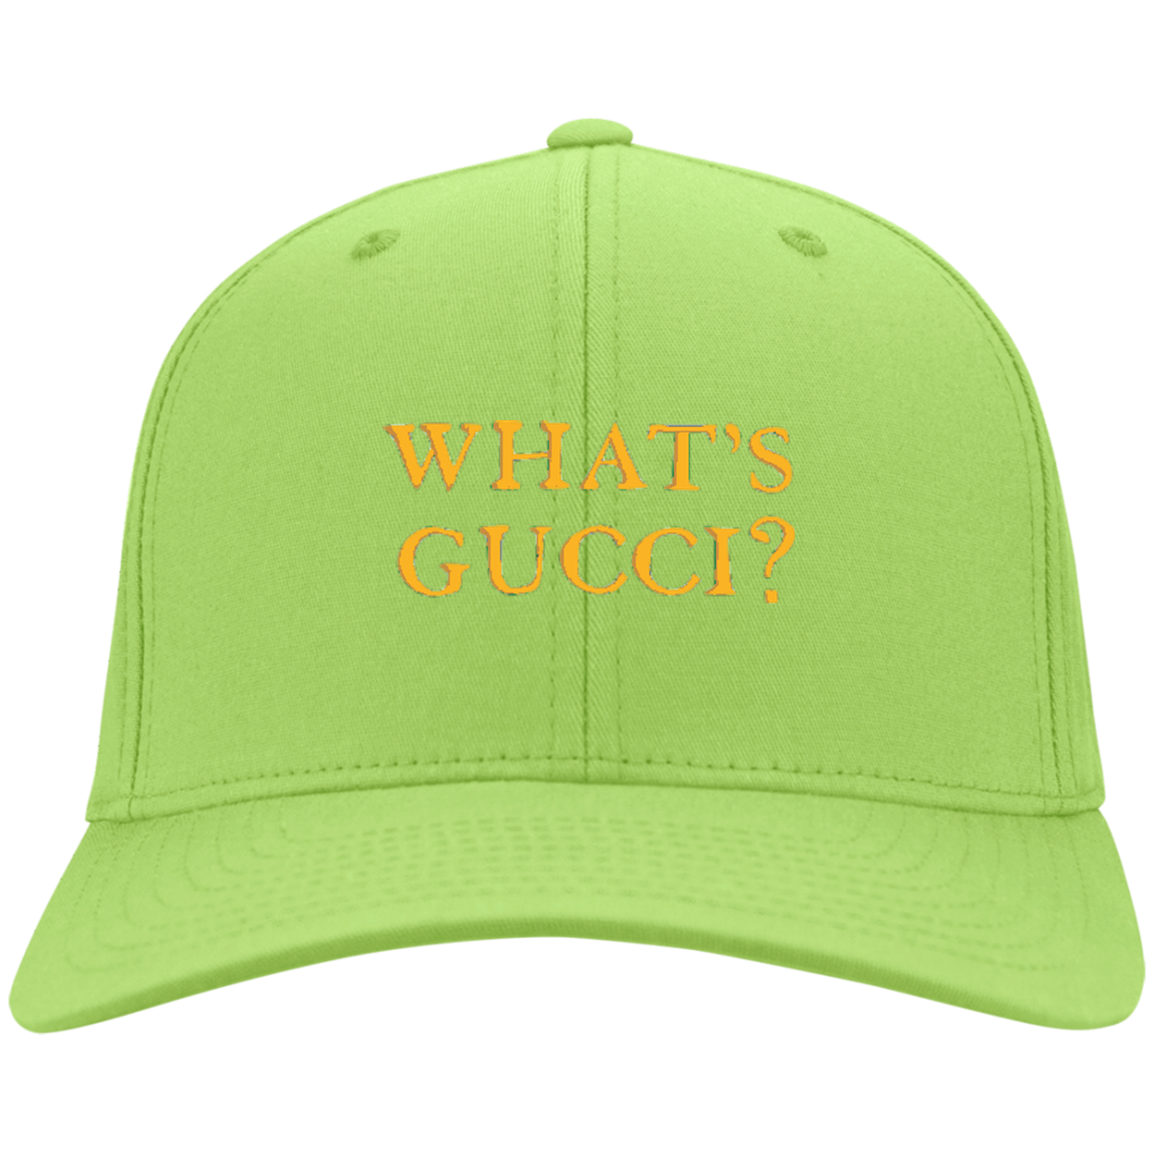 Gucci hat png. What s tropic gold